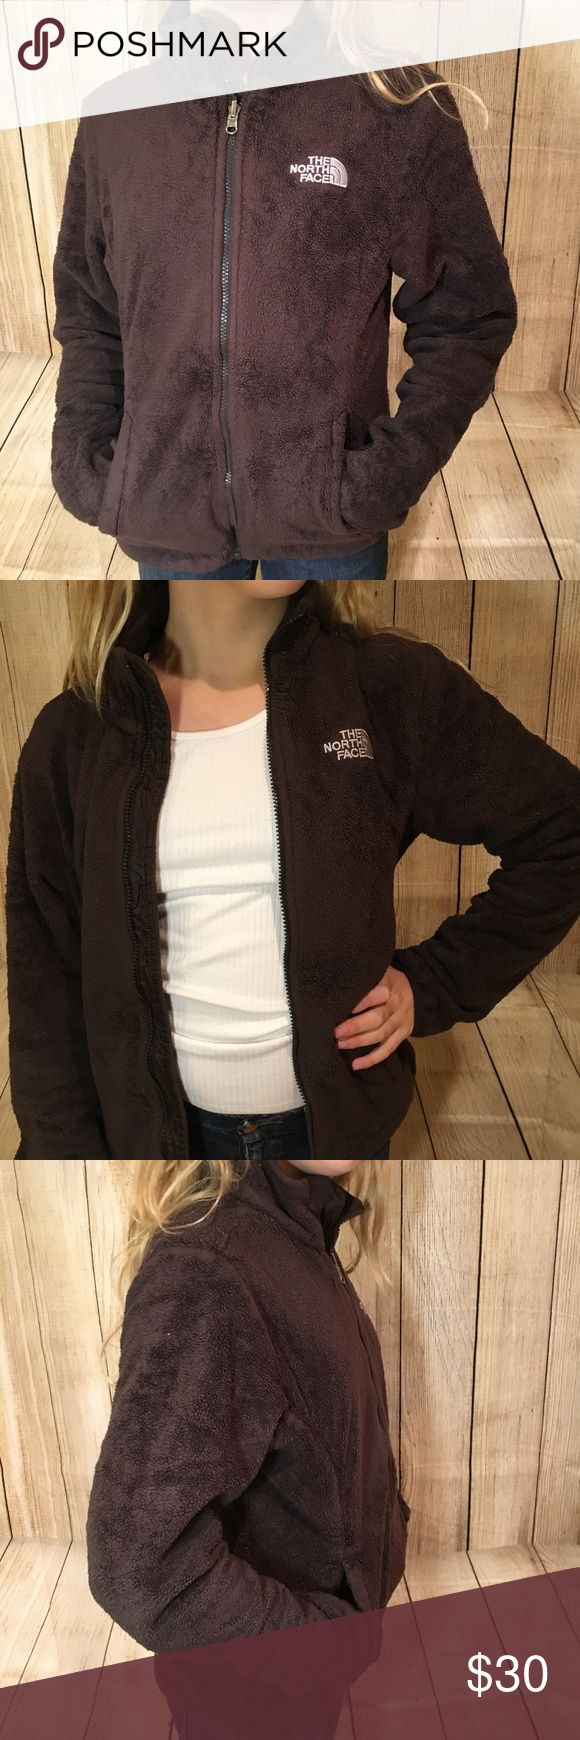 North Face Zip Up Cute dark drown zip up, tag says women's small but fits a little more like an XS. Gently warn condition, no stains or holes.   Please no low ball offers, I work hard to find, clean, inspect, mend and post all unique products, I am working to pay off school loans and always sell my products at great prices😊 The North Face Jackets & Coats